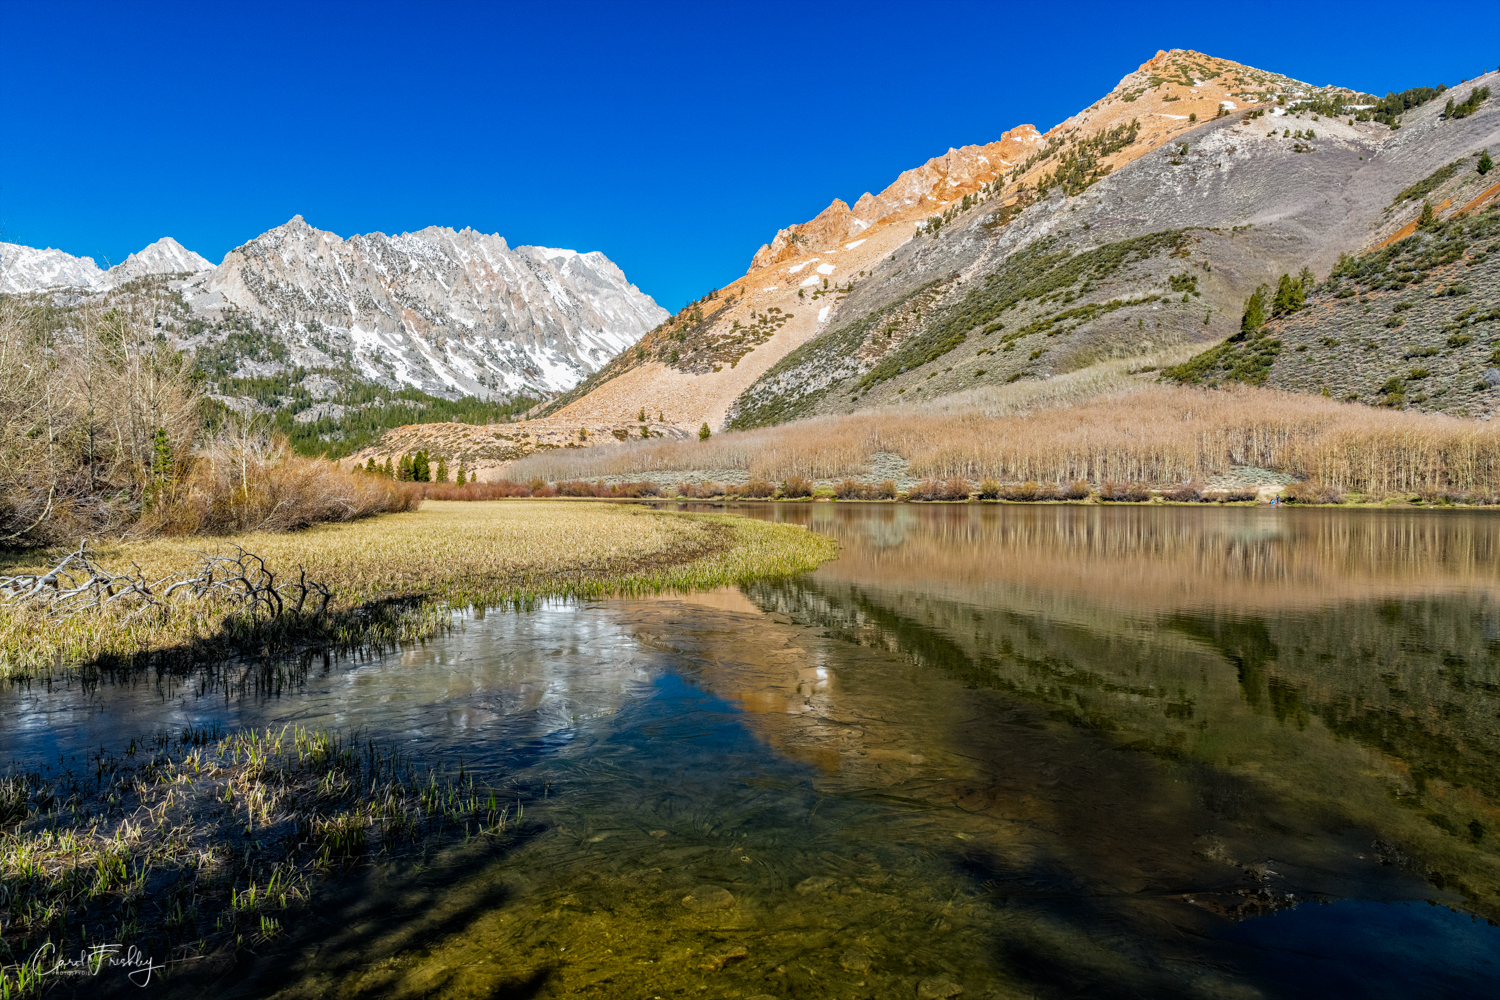 All three lakes are accessed from Bishop on Highway 168.  The road into North Lake was just opened and we were anxious to check it out.  If this scene looks familiar and you are a 'Mac' person you may recognize it as the opening screen on new Apple computers.  But the vivid color of fall that you see in that photo looks much more toned down in the spring before the aspen across the lake have even started leafing out.  You may notice the very thin layer of ice along the water's edge in this photograph.